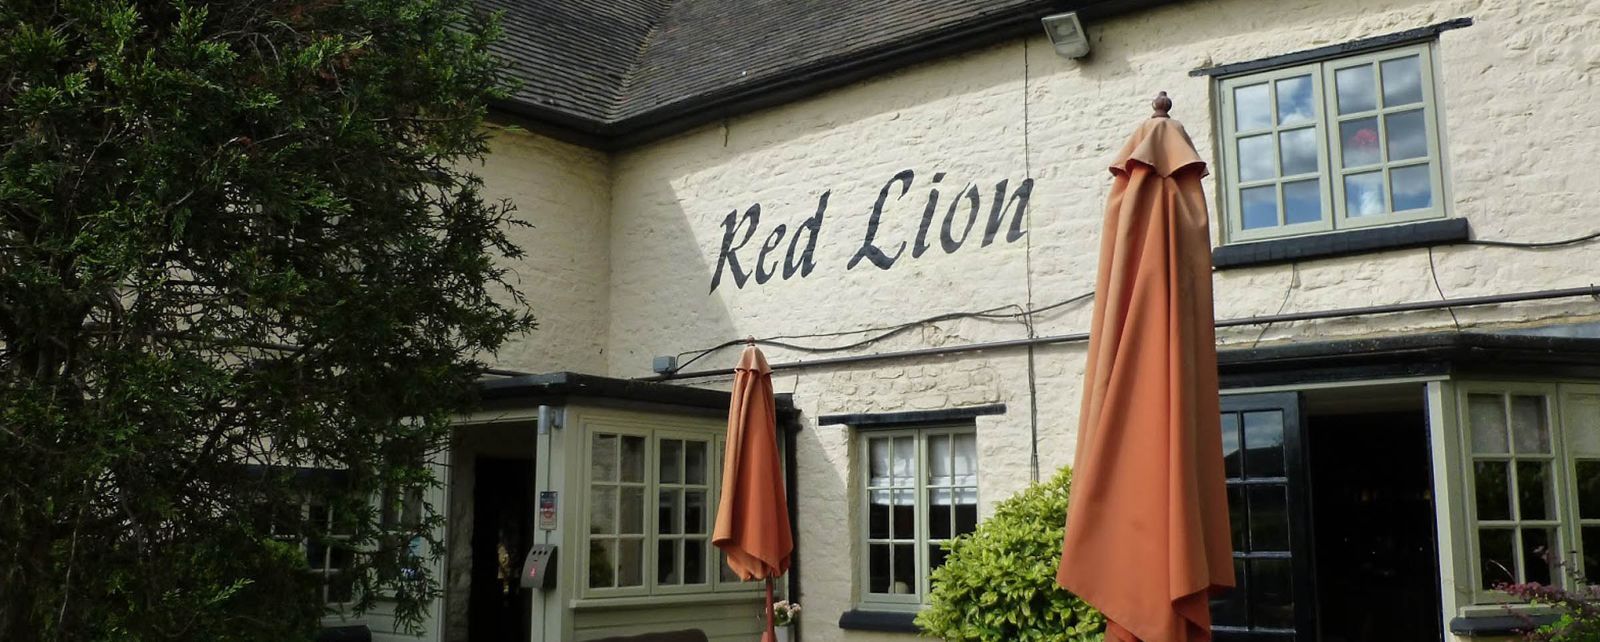 The Red Lion at Brafield | Northampton | Pub | Steakhouse